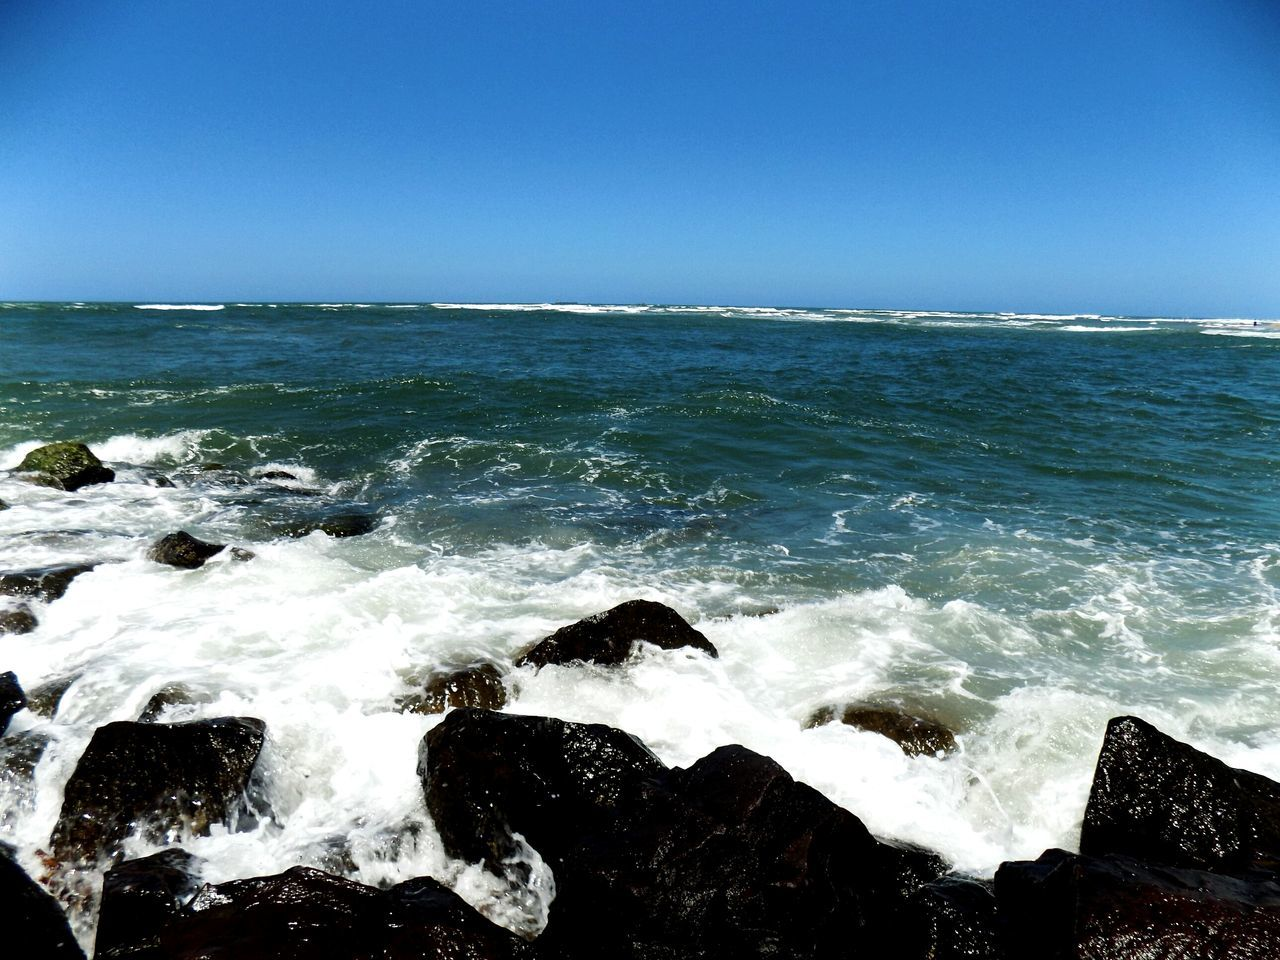 sea, horizon over water, water, clear sky, scenics, wave, outdoors, splashing, nature, sky, beauty in nature, day, motion, no people